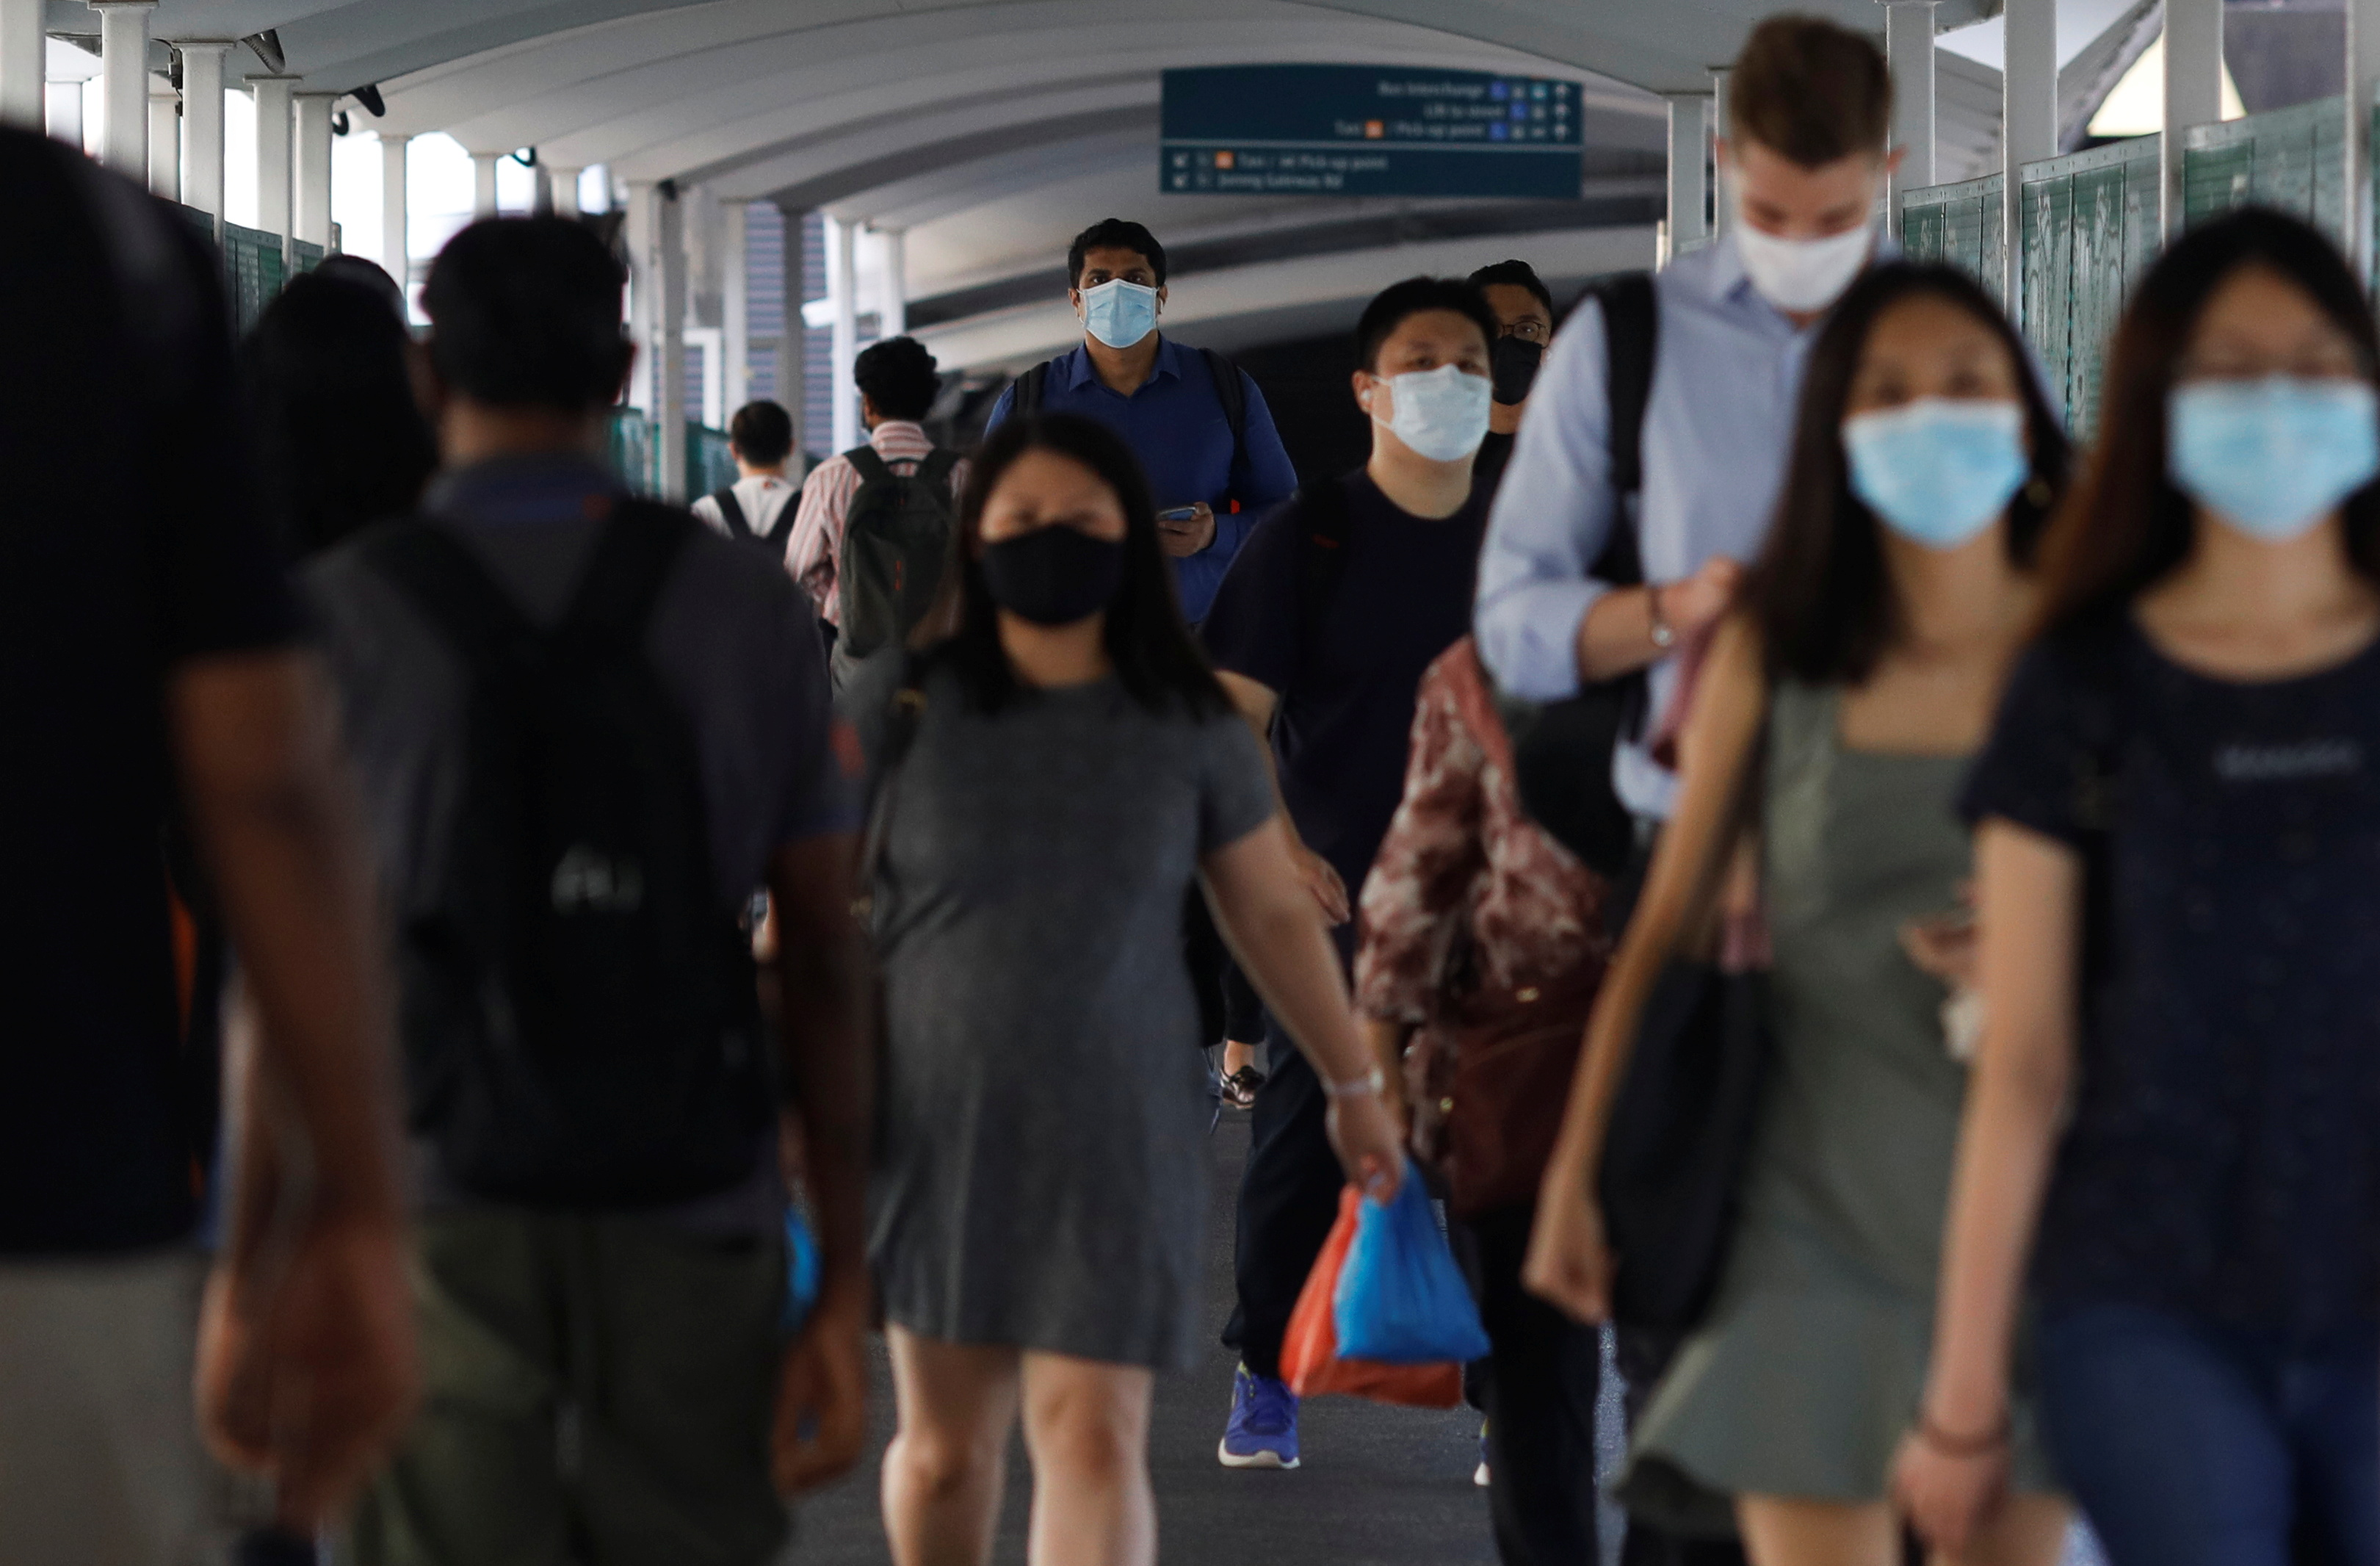 Commuters leave a train station during the coronavirus disease (COVID-19) outbreak, in Singapore, September 23, 2021. REUTERS/Edgar Su